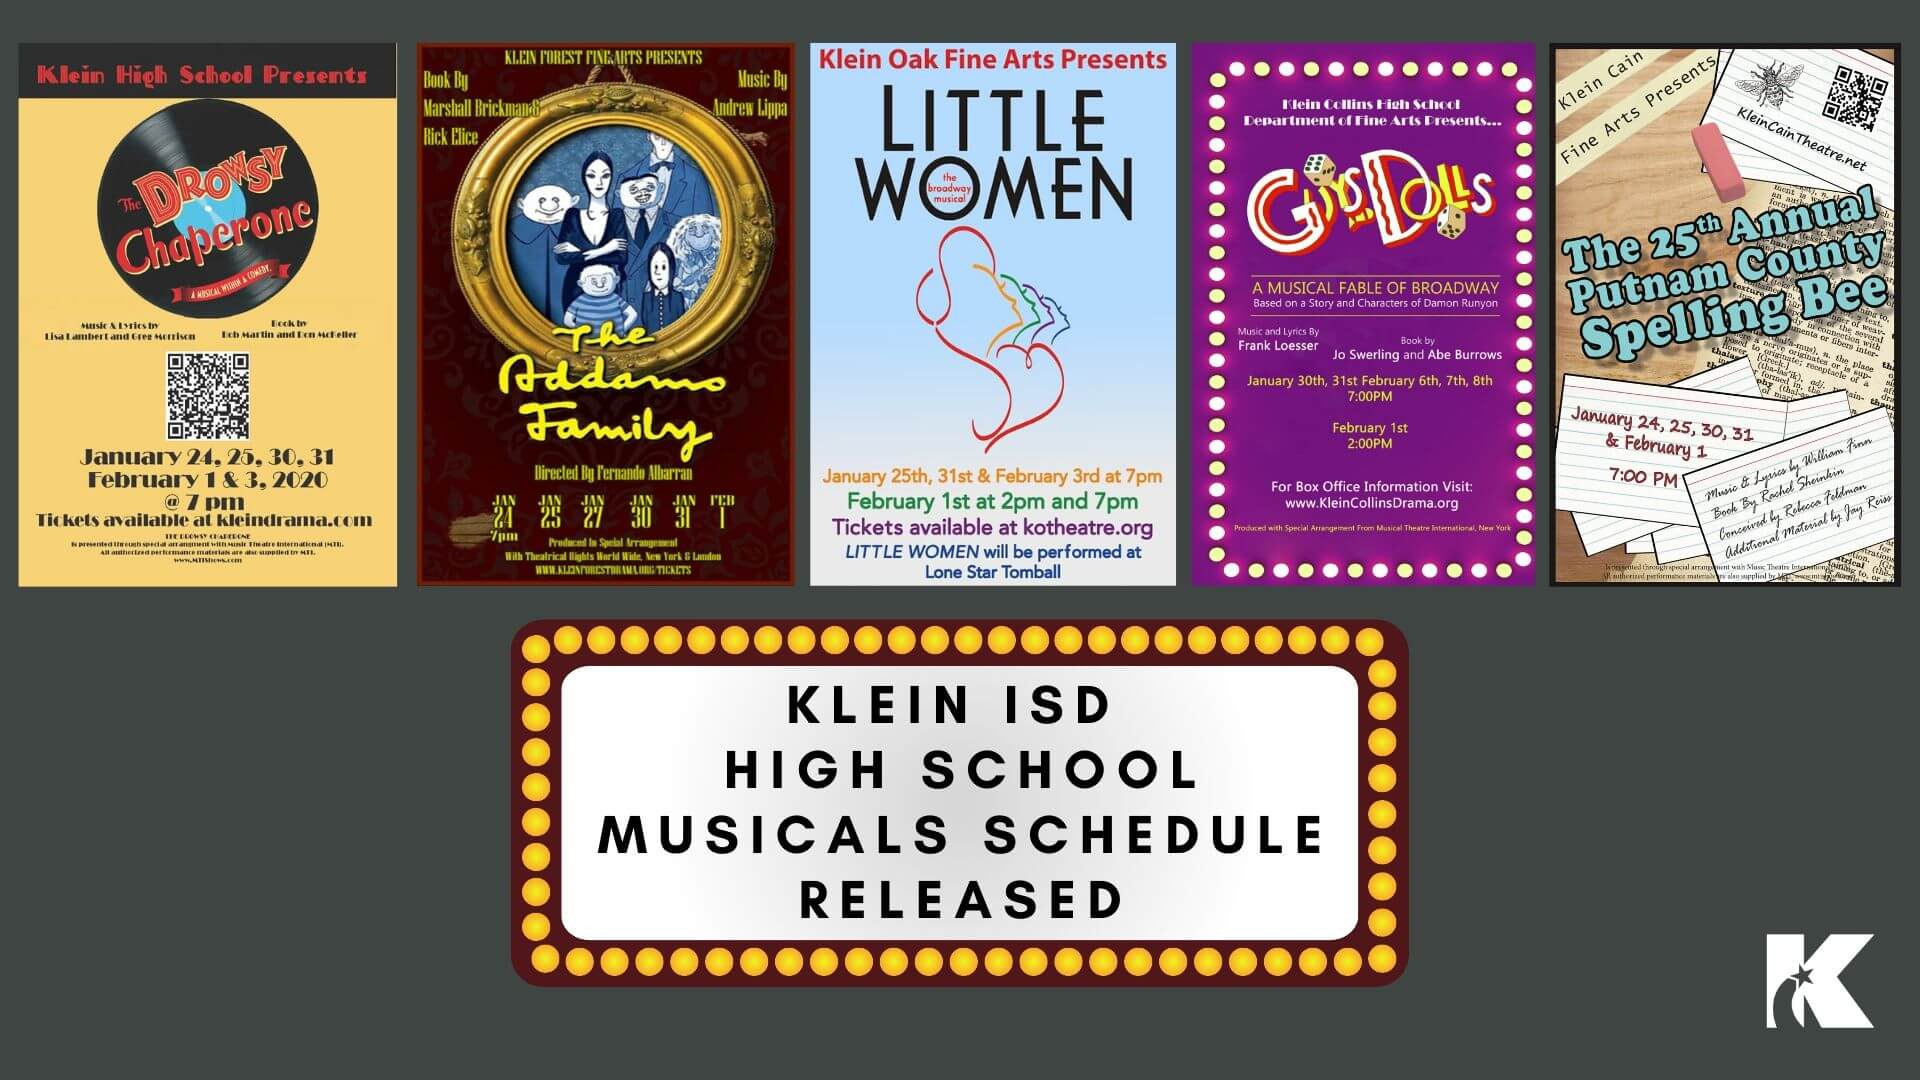 Performance Dates Released for all 5 Klein ISD High School Musicals